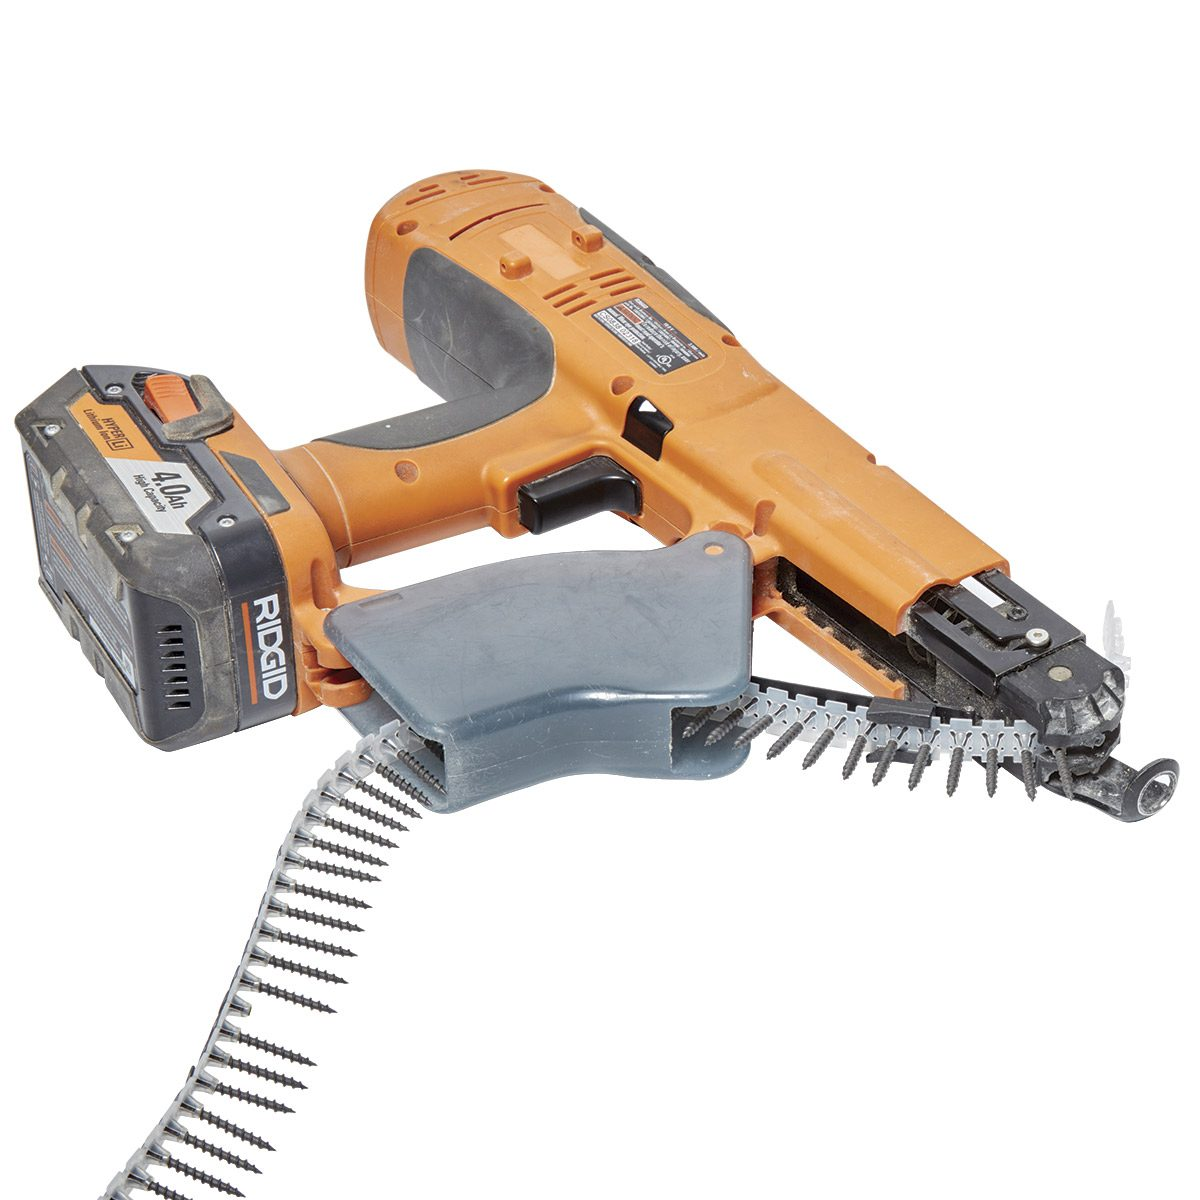 Self-feeding drywall screw gun